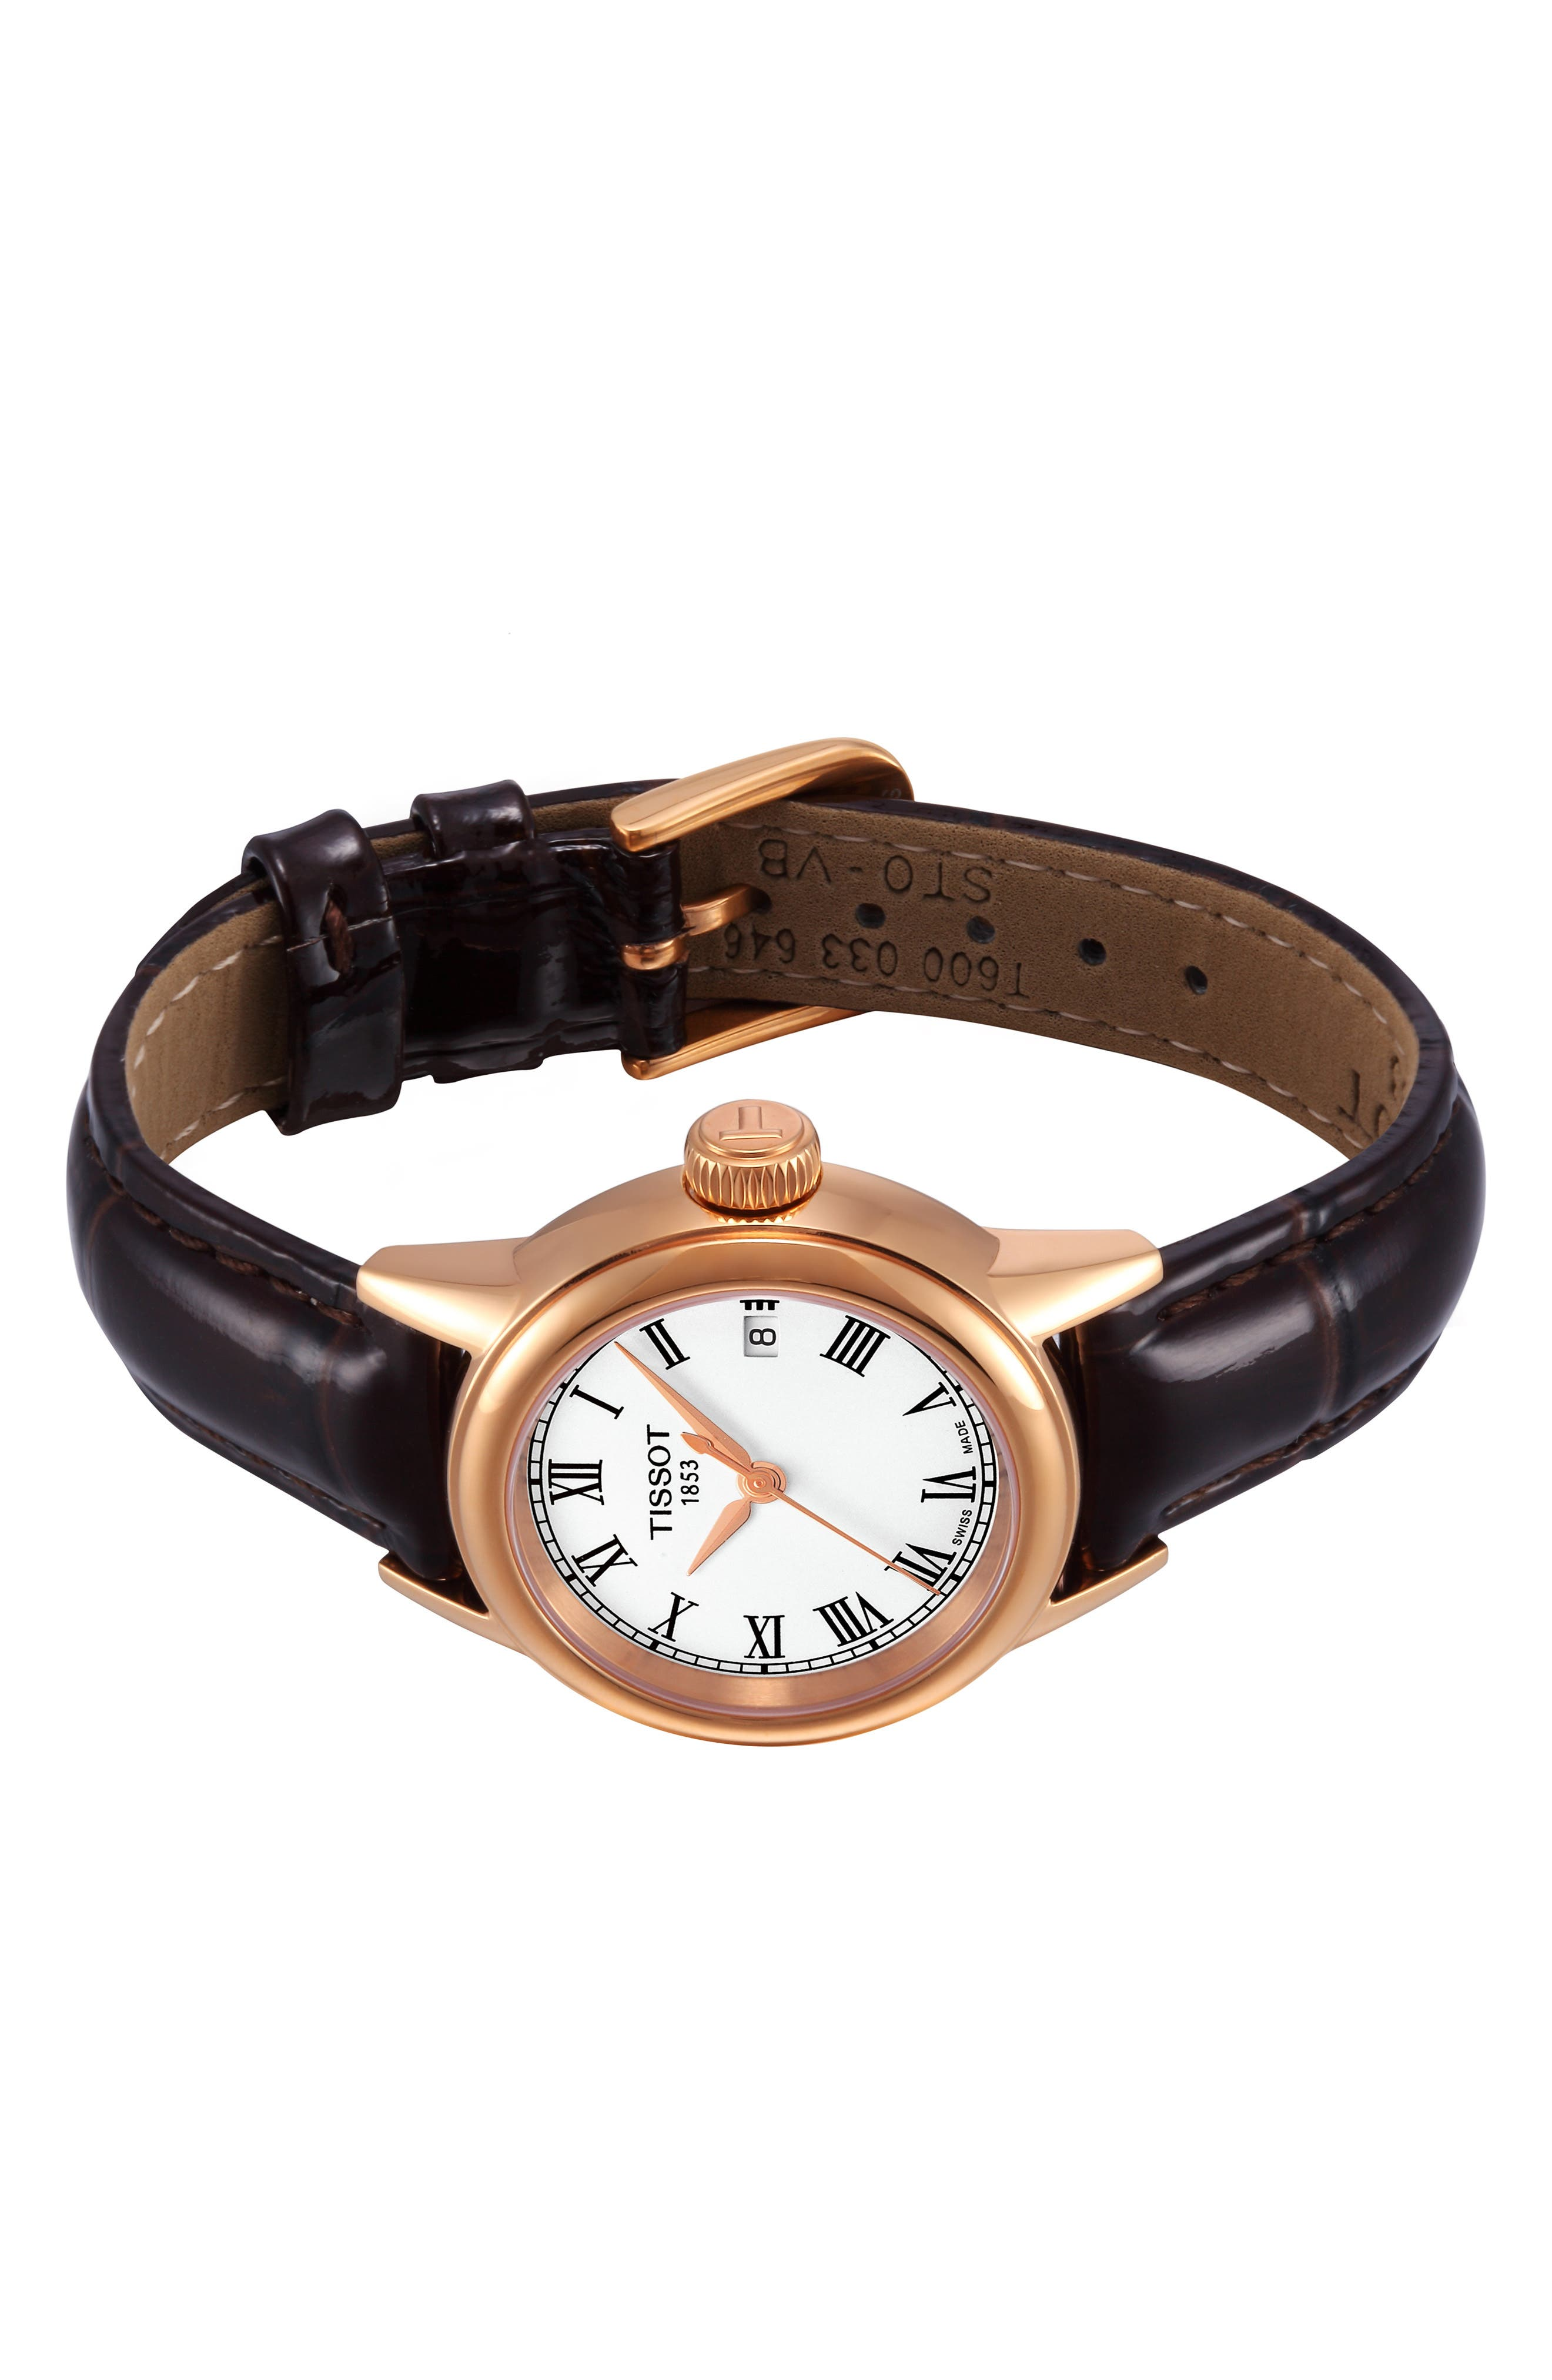 TISSOT, Carson Leather Strap Watch, 28mm, Alternate thumbnail 5, color, 201